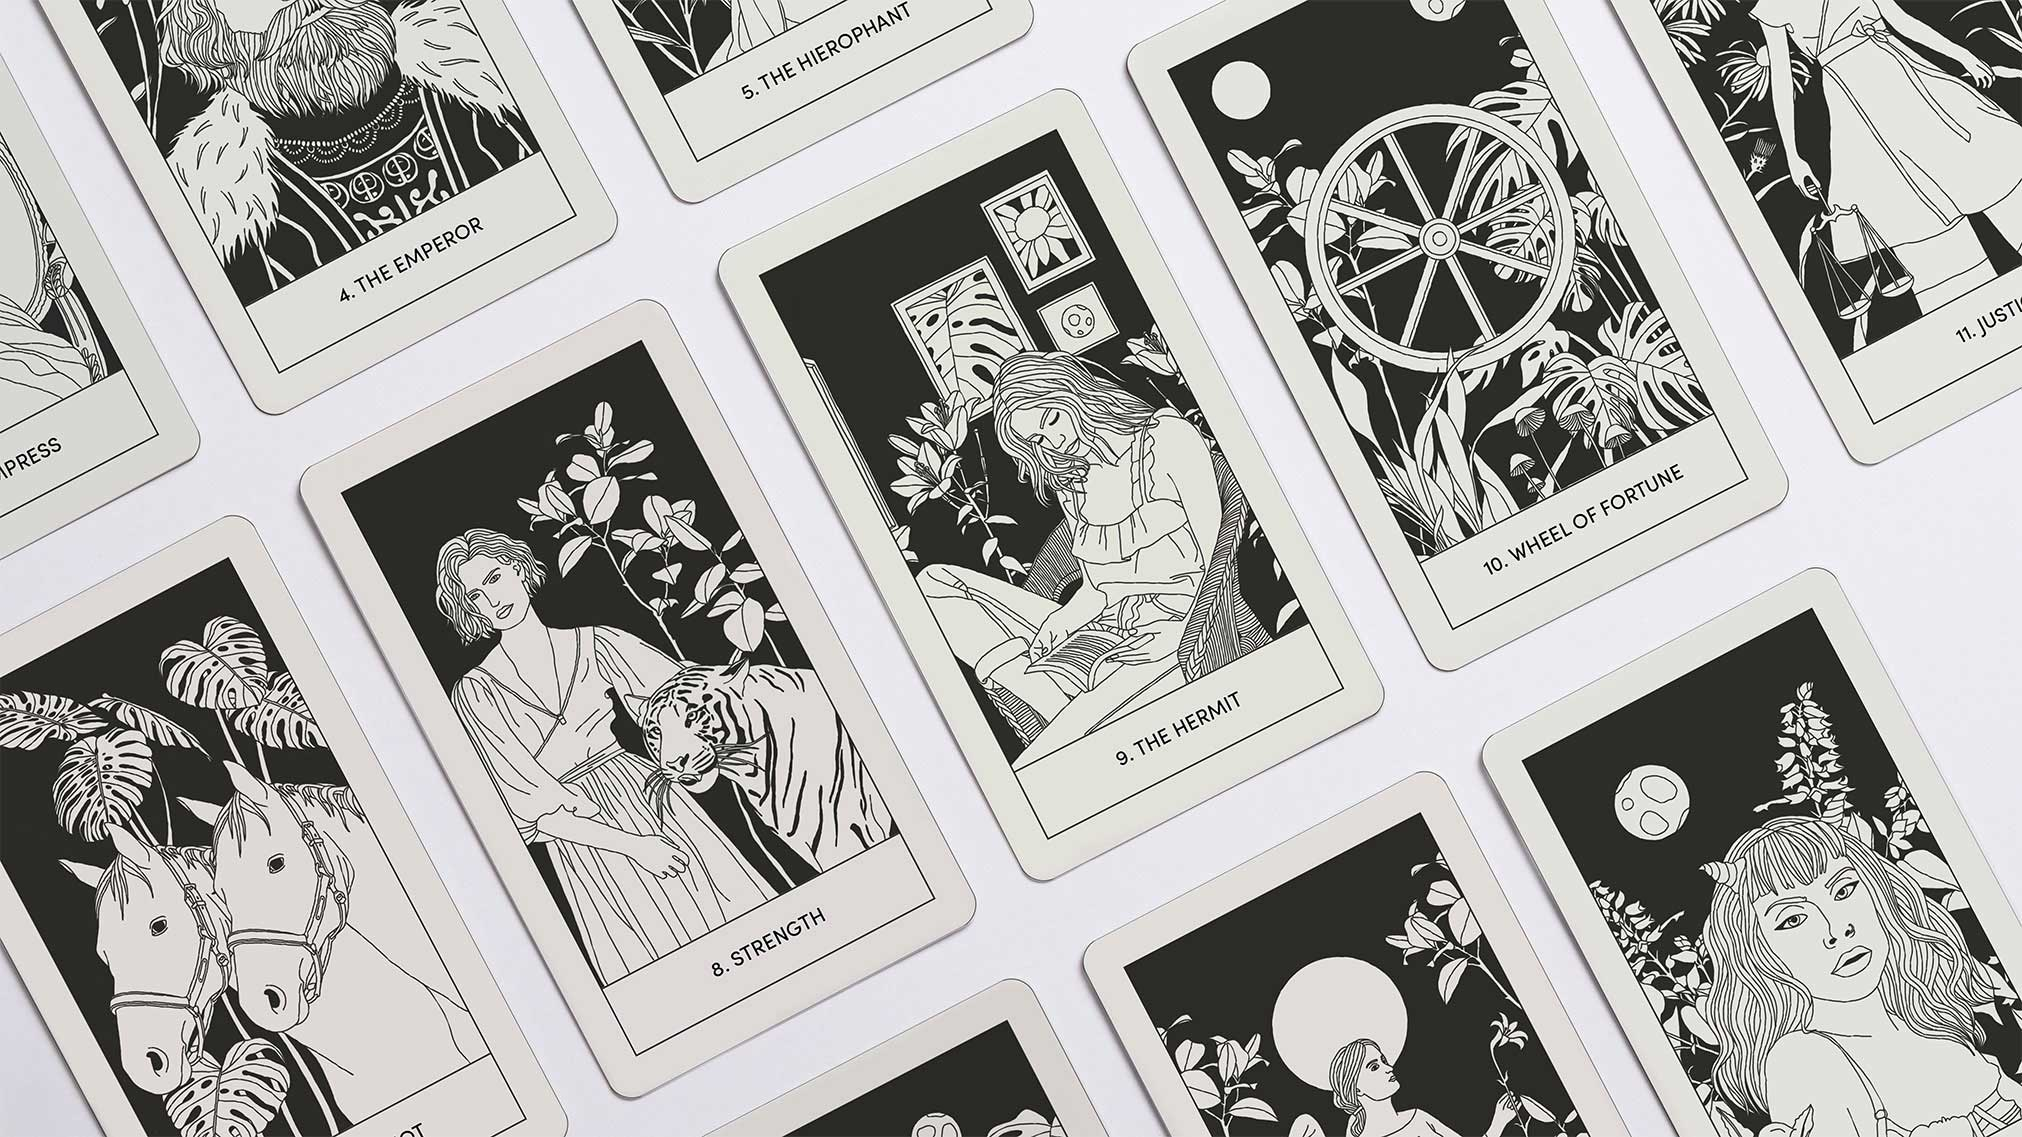 In November 2020, I decided to design a tarot card deck and guidebook in order to showcase my illustrations and designs together. This project involved illustration, print layout, and brand identity design.